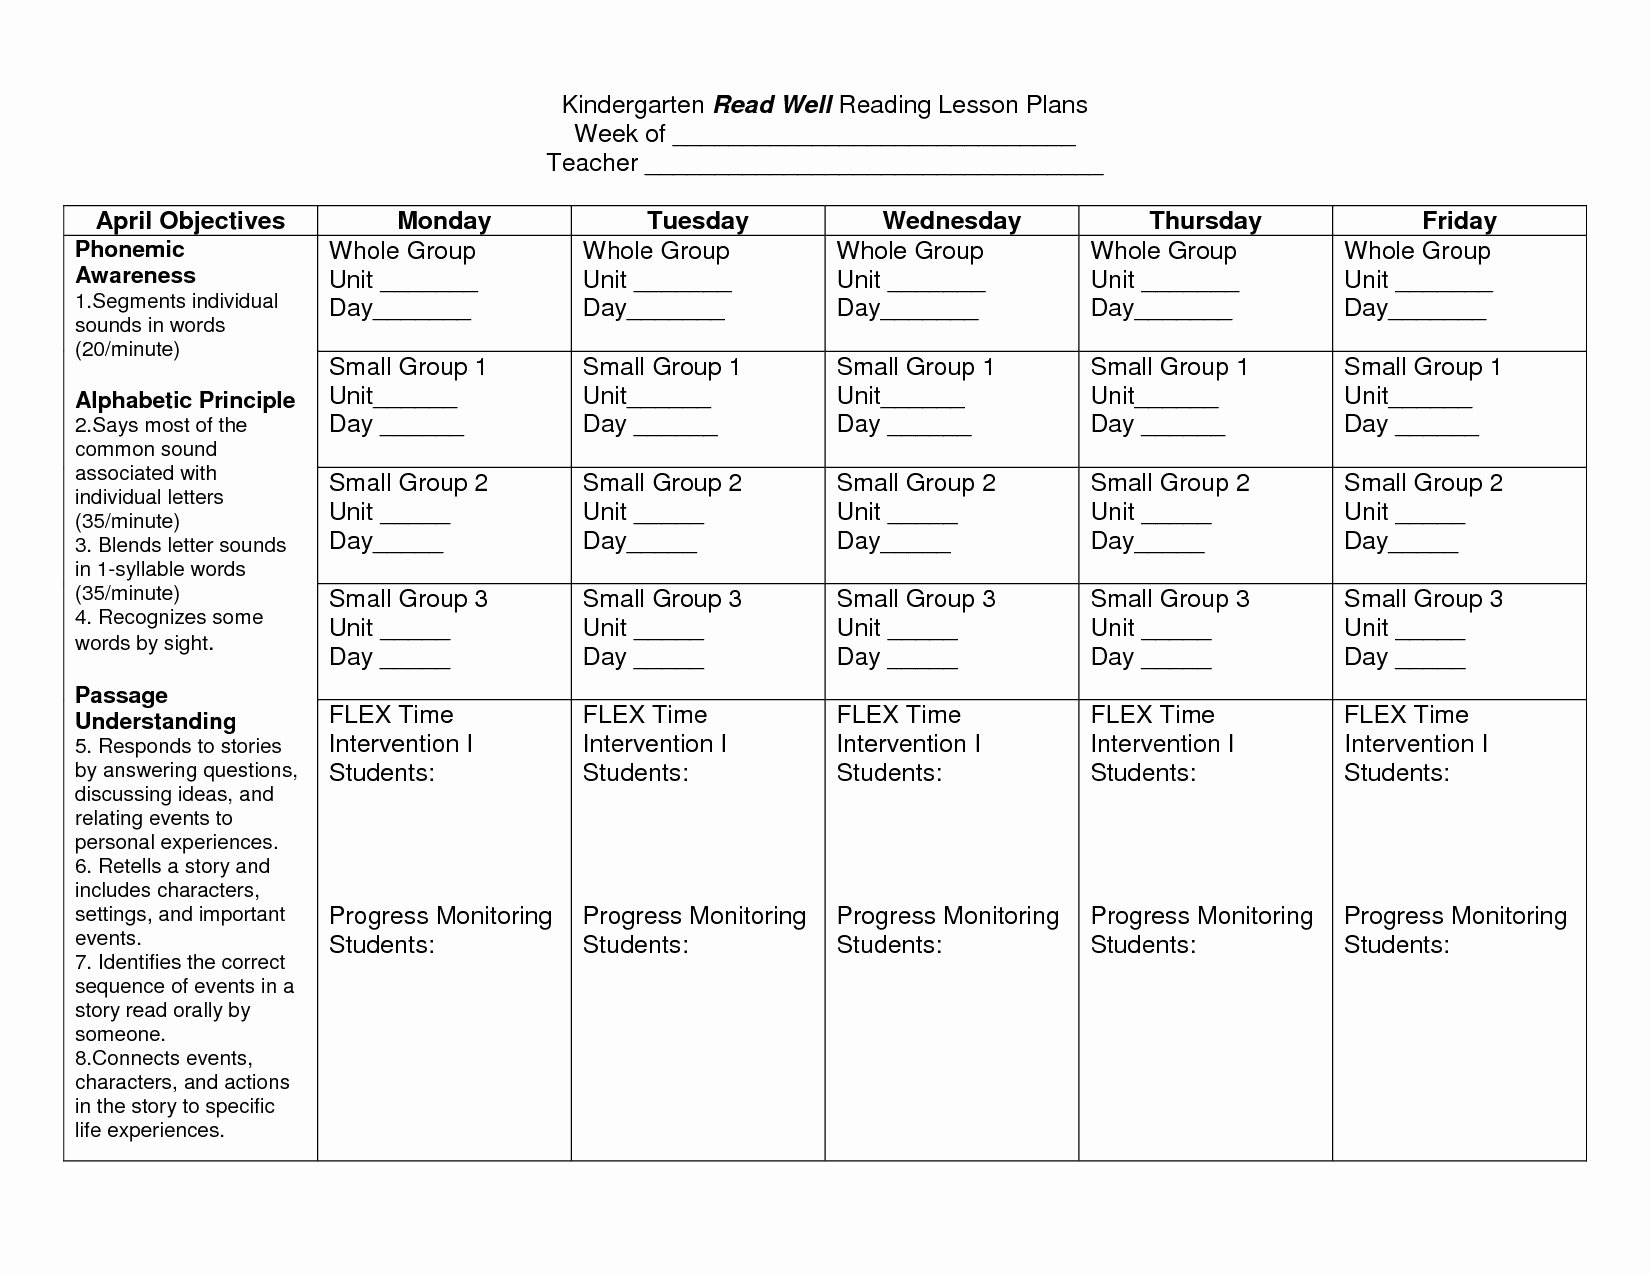 Guided Reading Lesson Plan Template Unique What is Reading Definition Pdf From is to What is